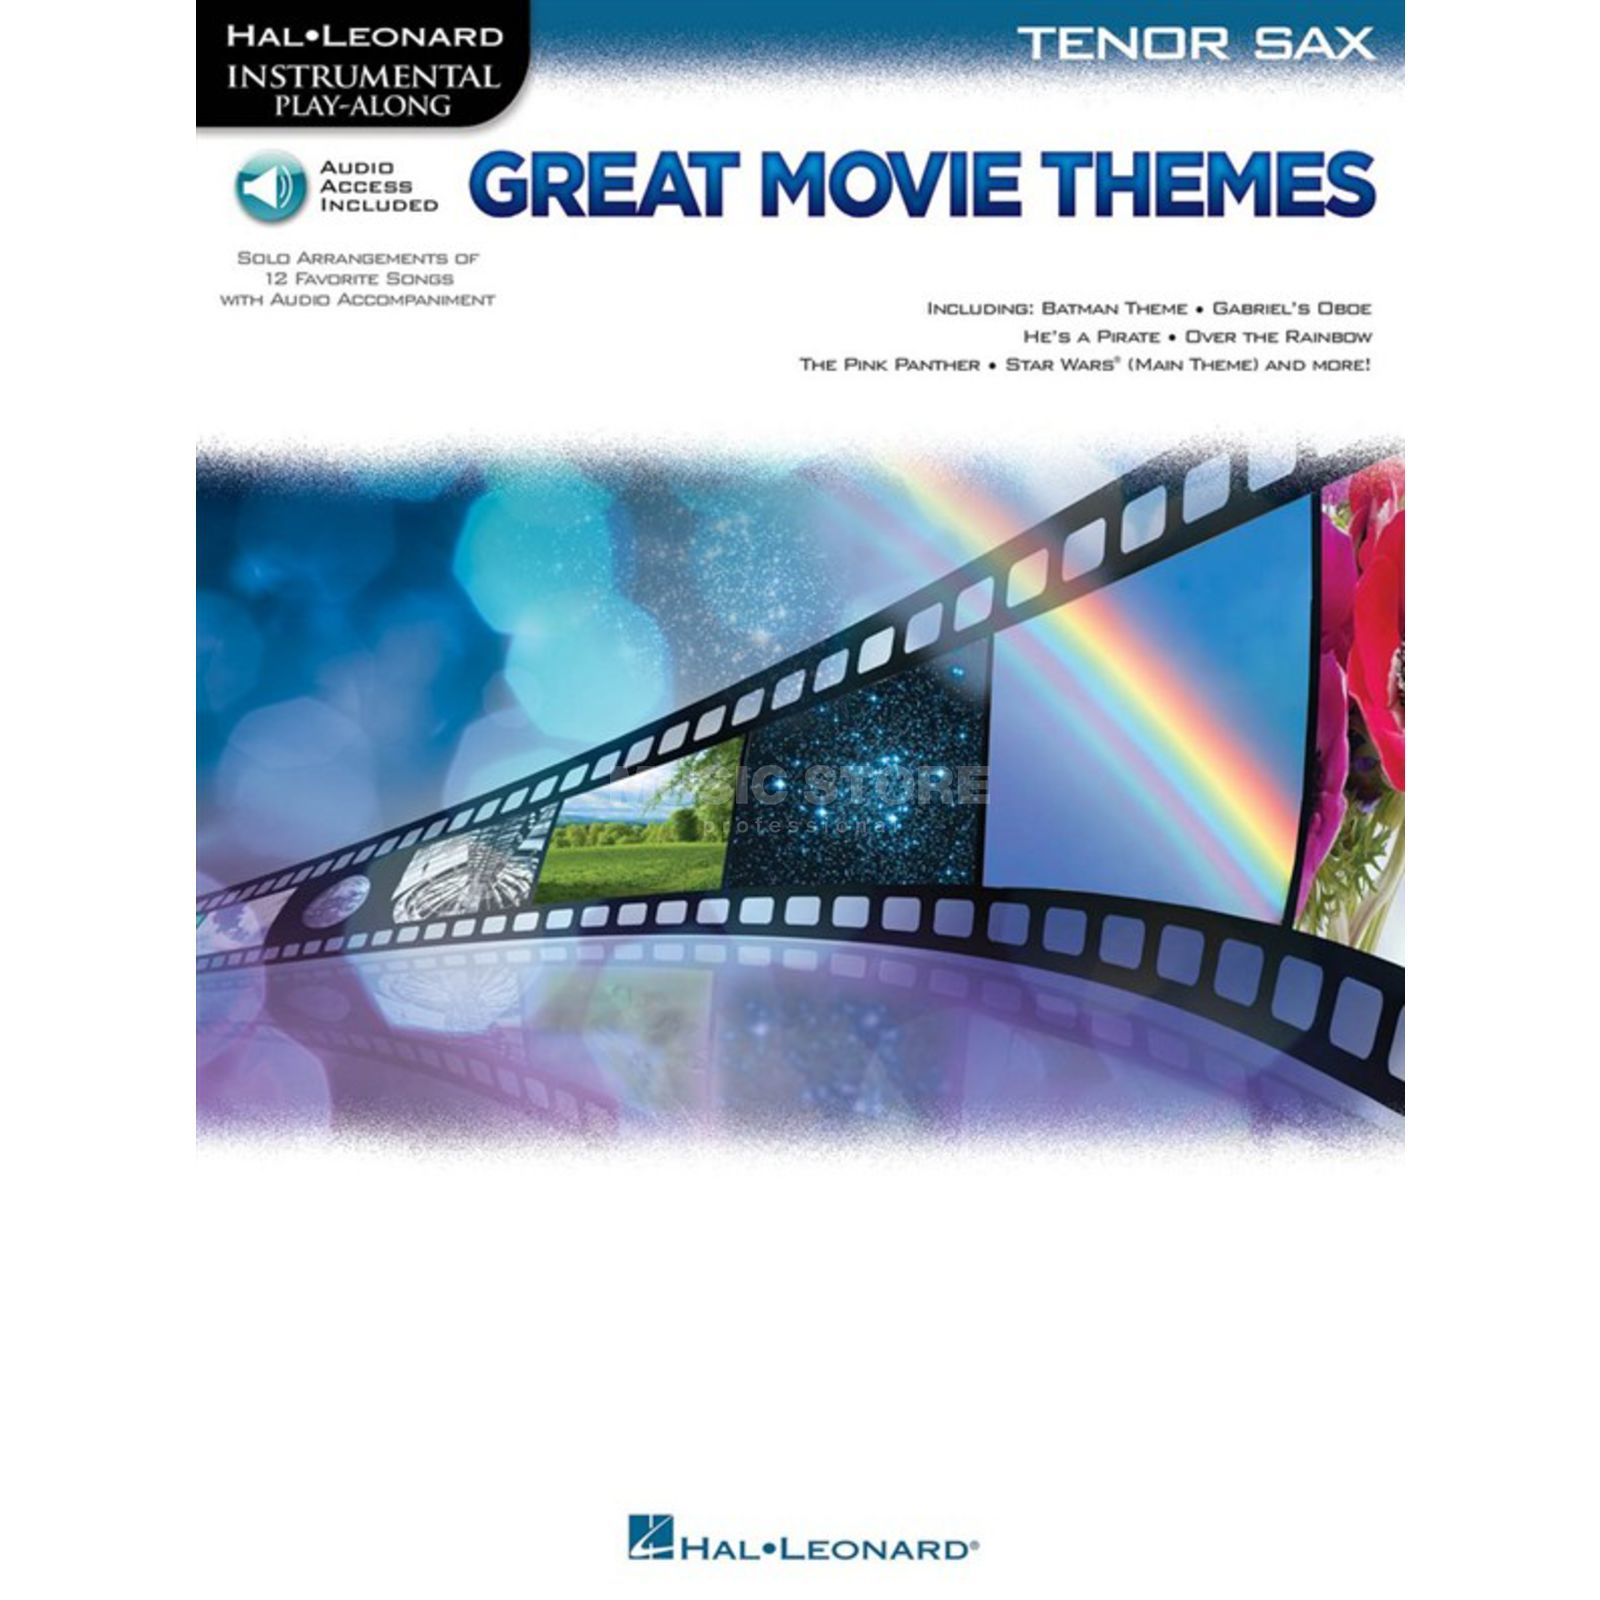 Hal Leonard Instrumental Play-Along: Great Movie Themes - Tenor Saxophone Produktbillede